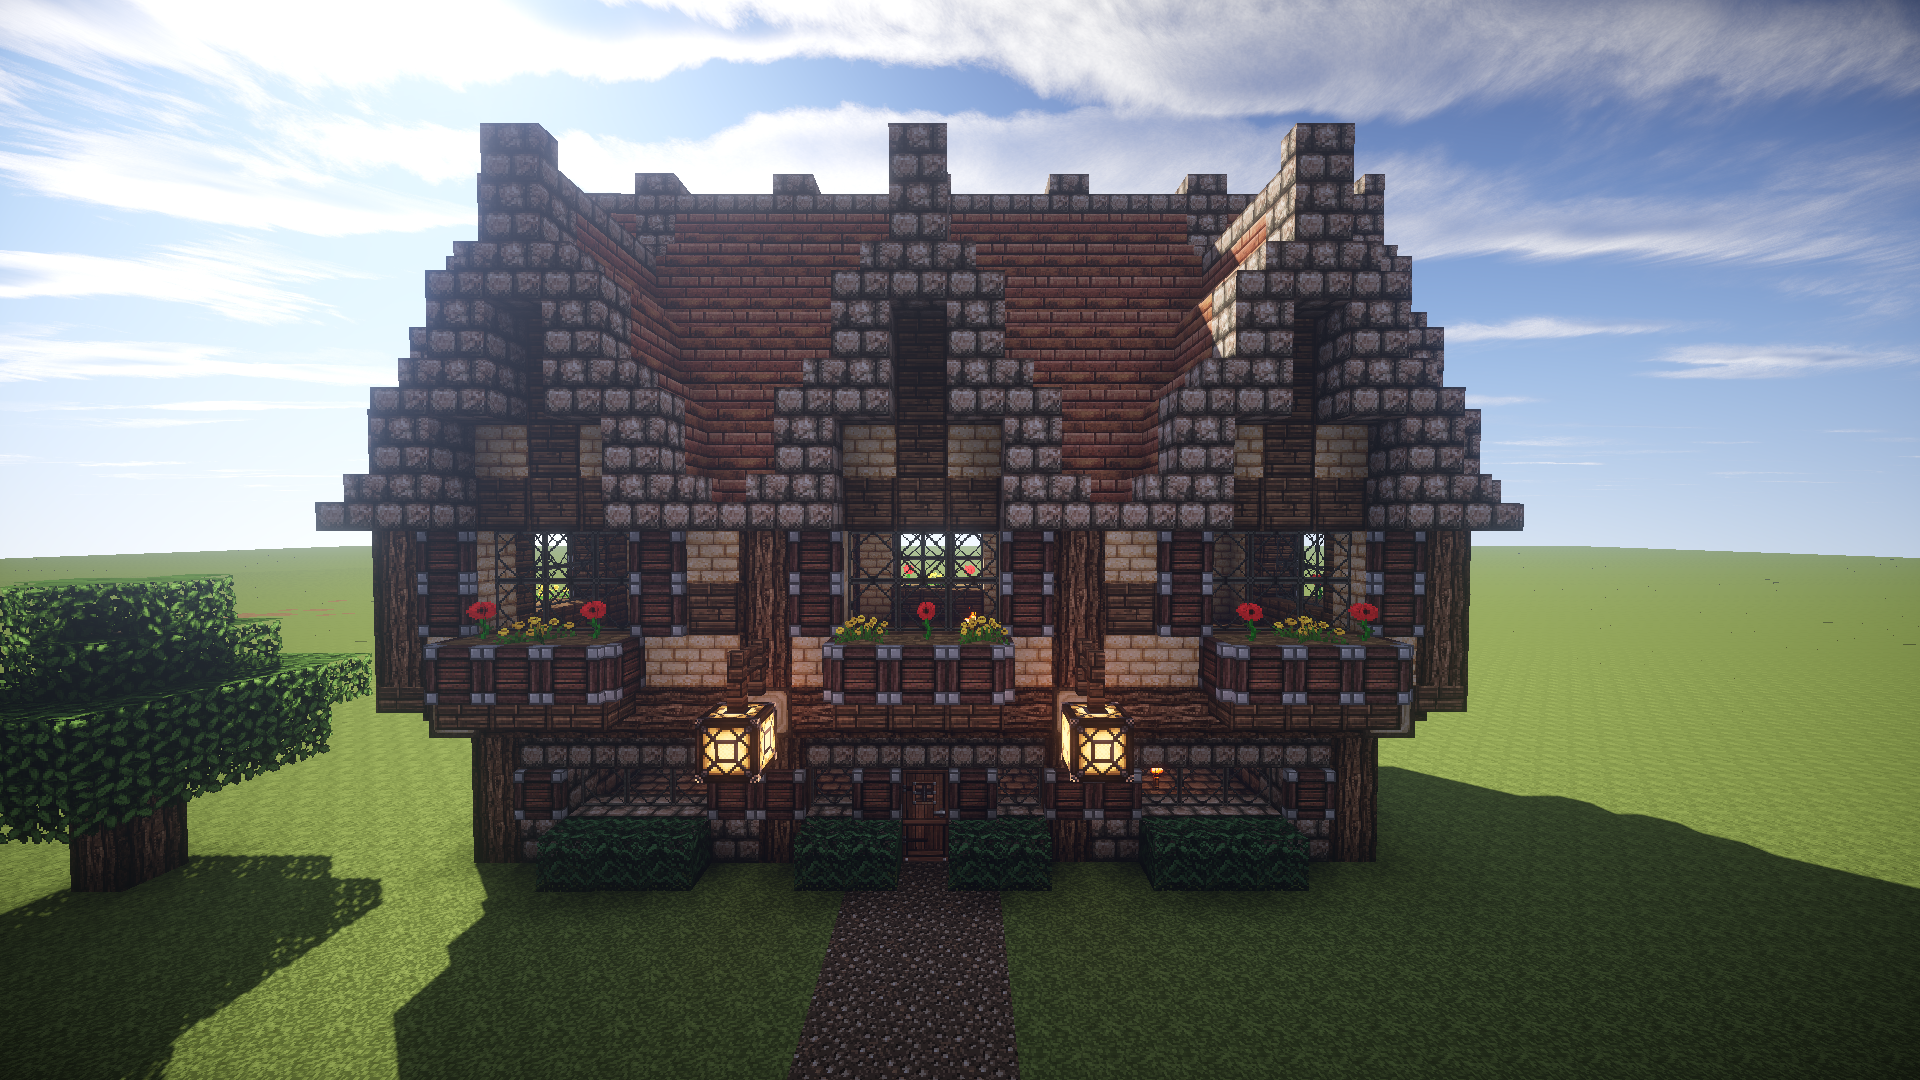 Minecraft Medieval House 1 By Daggytee On Deviantart